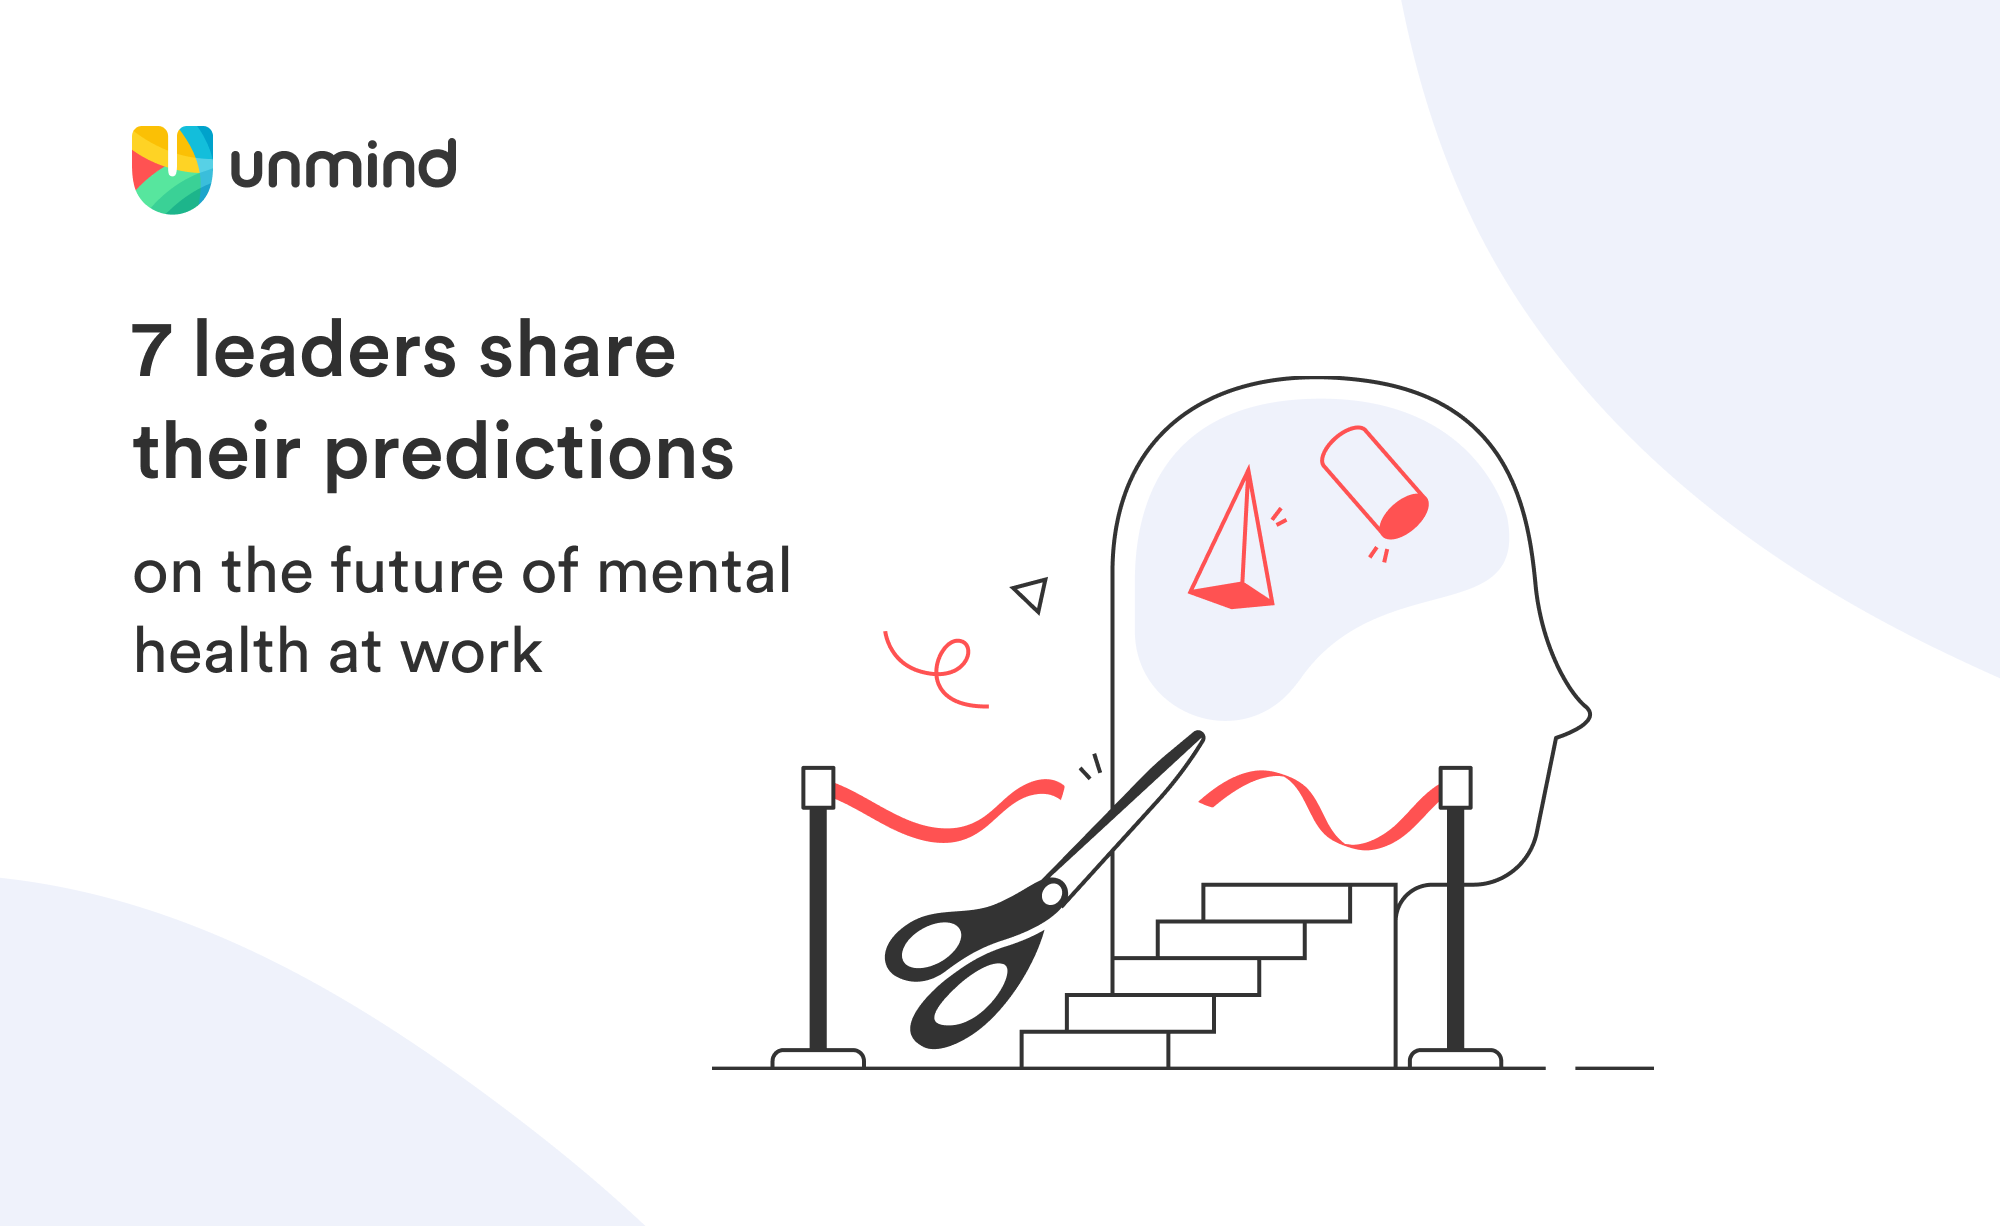 7 HR leaders share their predictions on the future of mental health at work